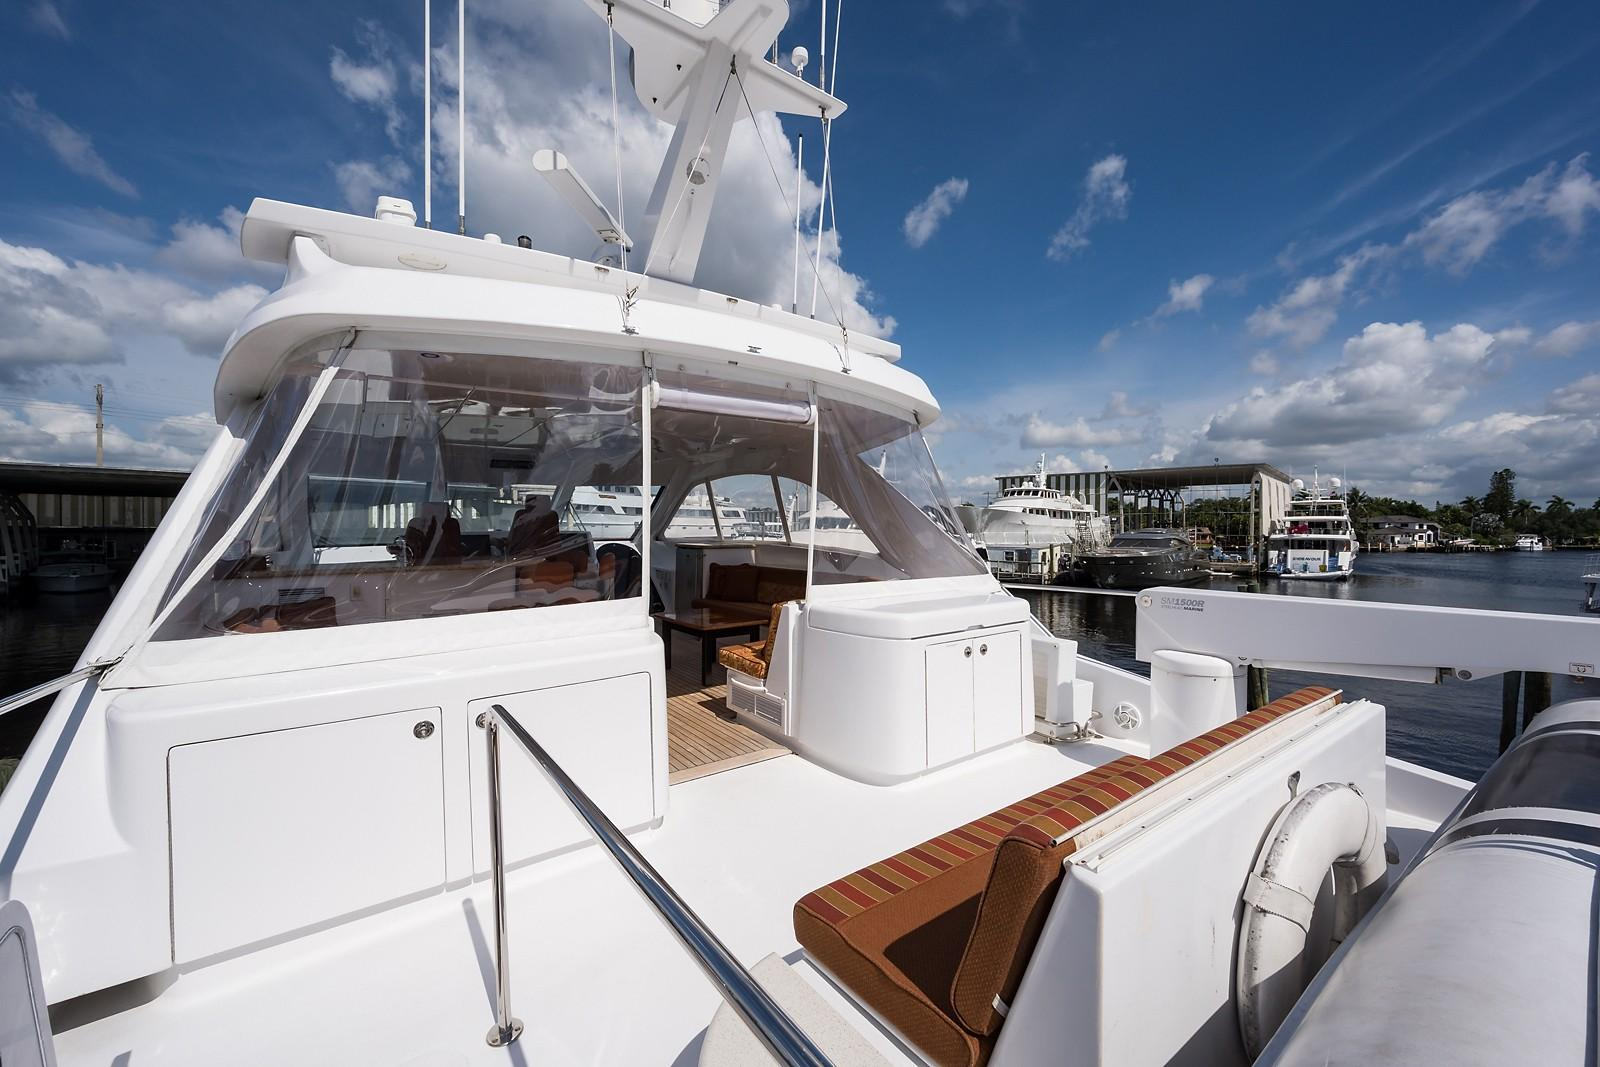 72 ft Hatteras 72 Motor Yacht Boat Deck Forward to Starboard